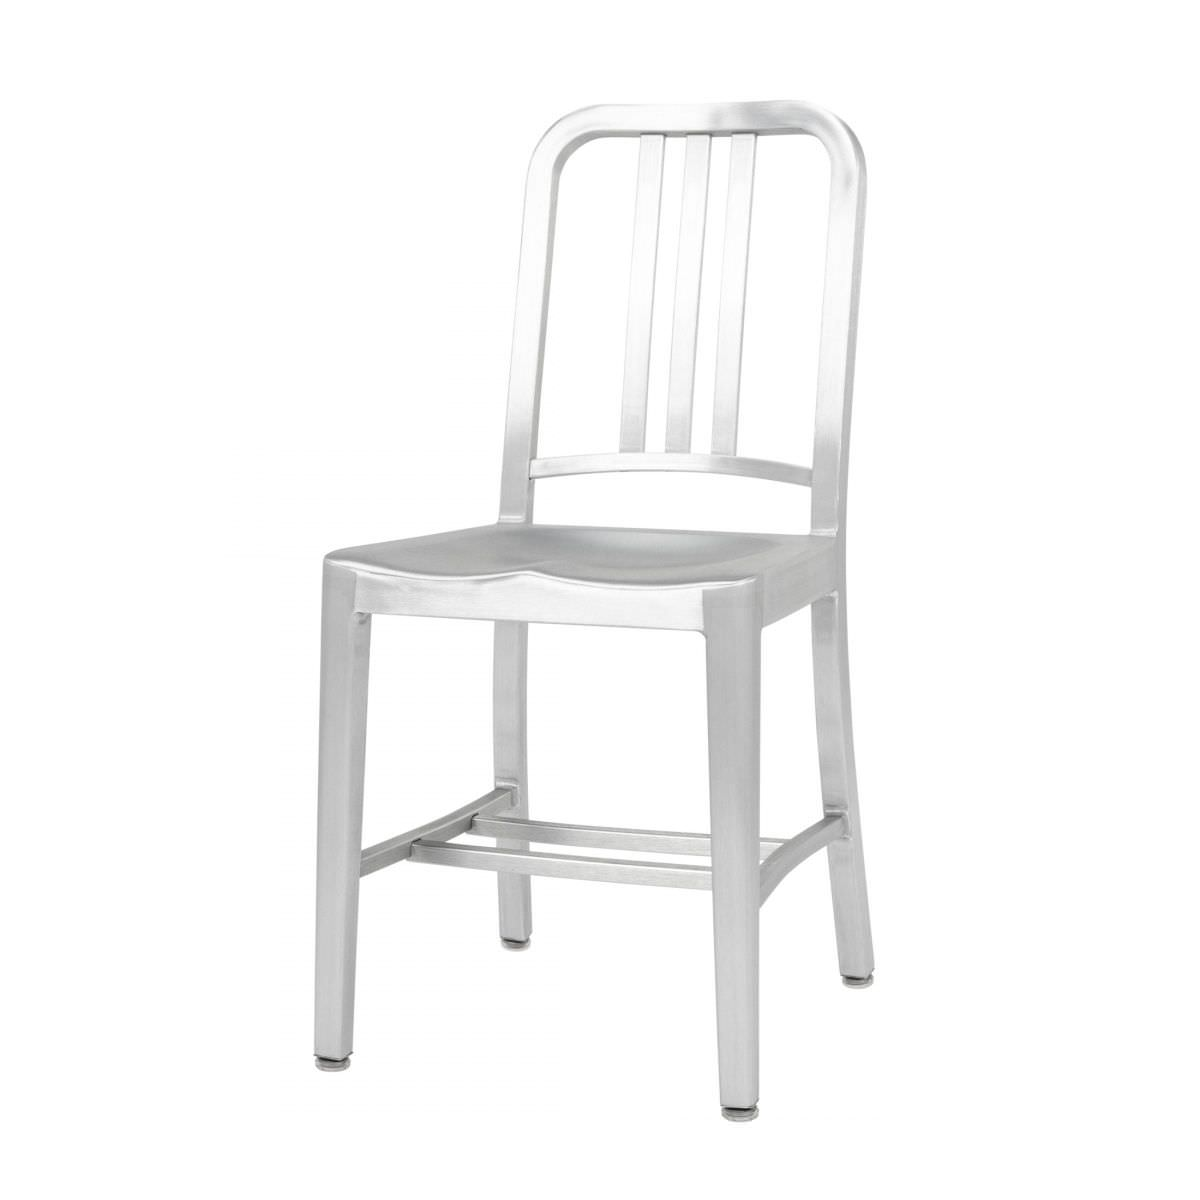 chair aluminum recycled commercial navy emeco